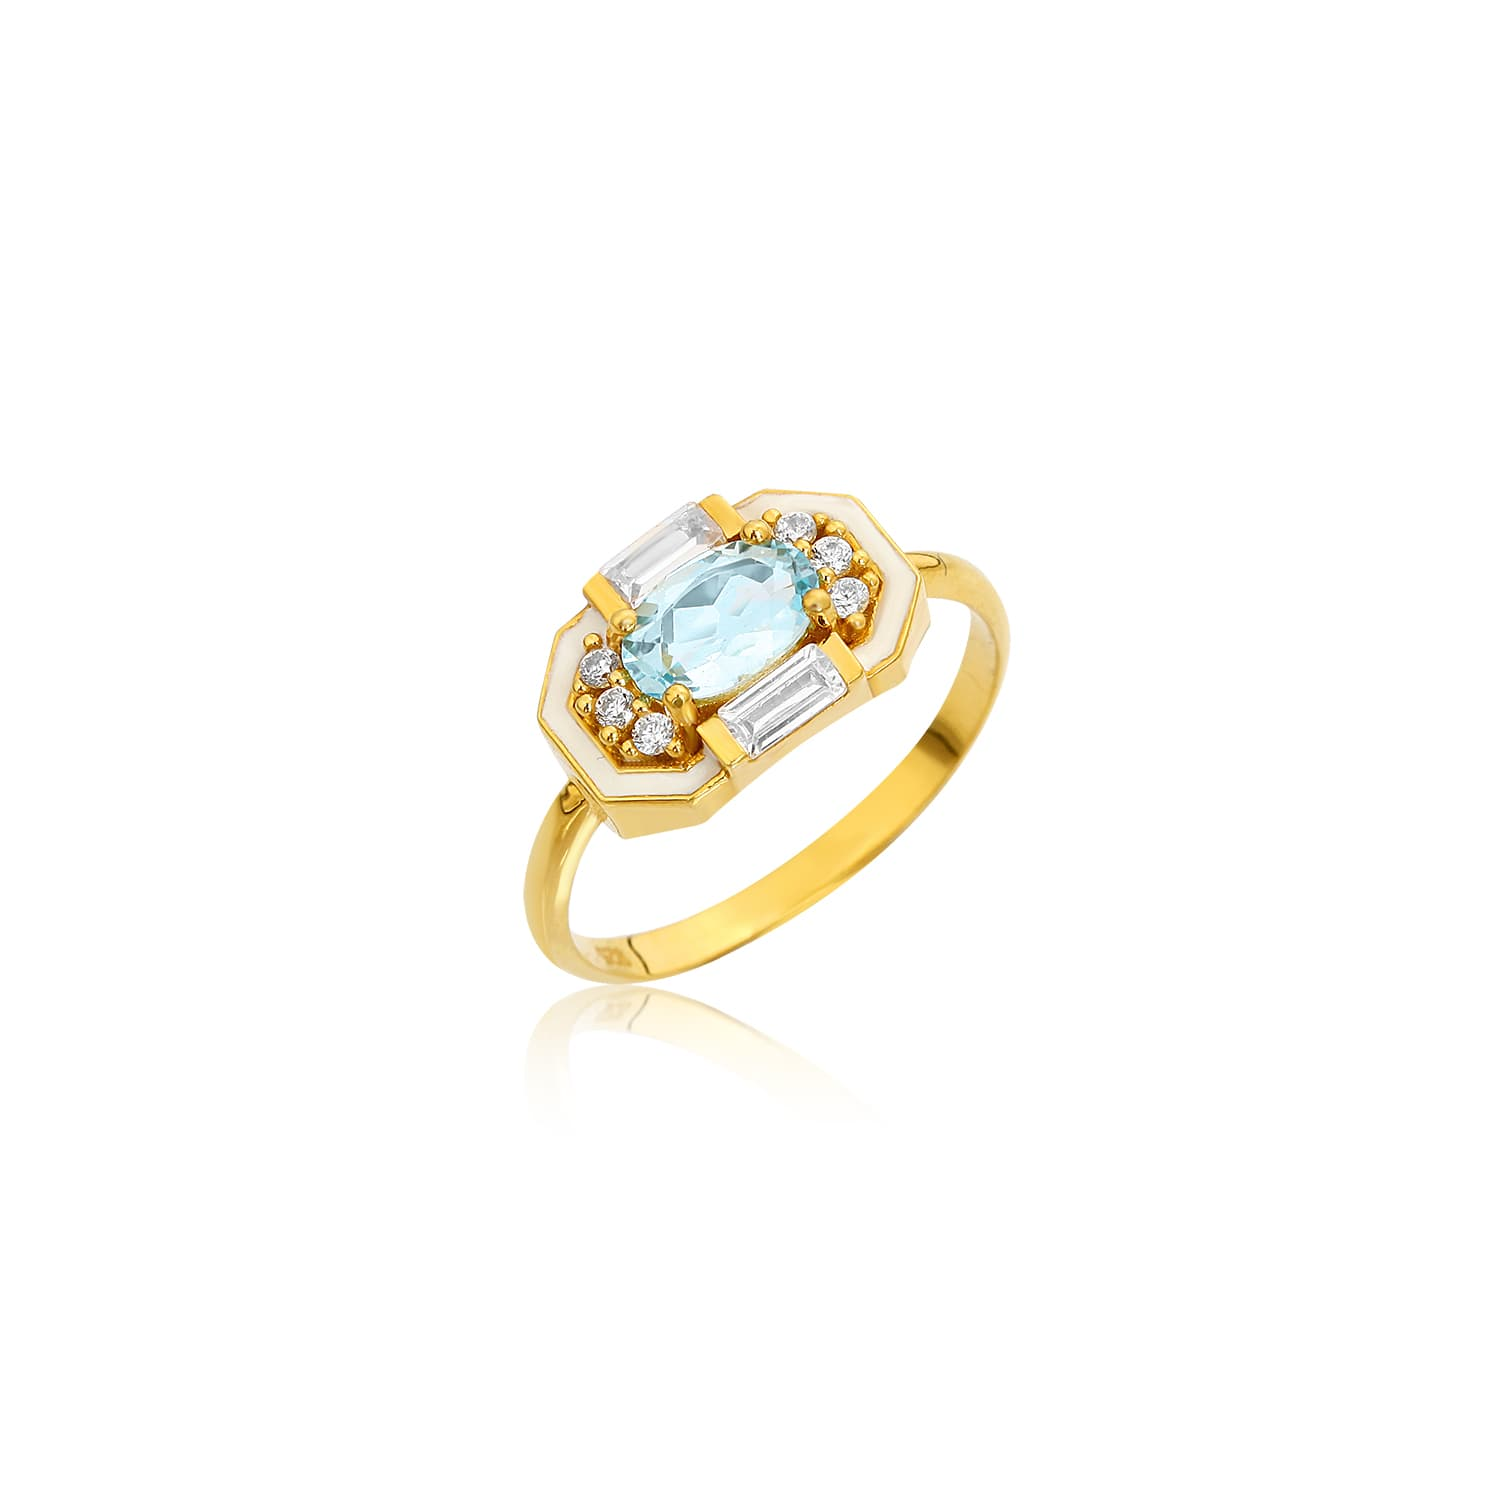 Real gold plated oval cut blue topaz stone ring on silver